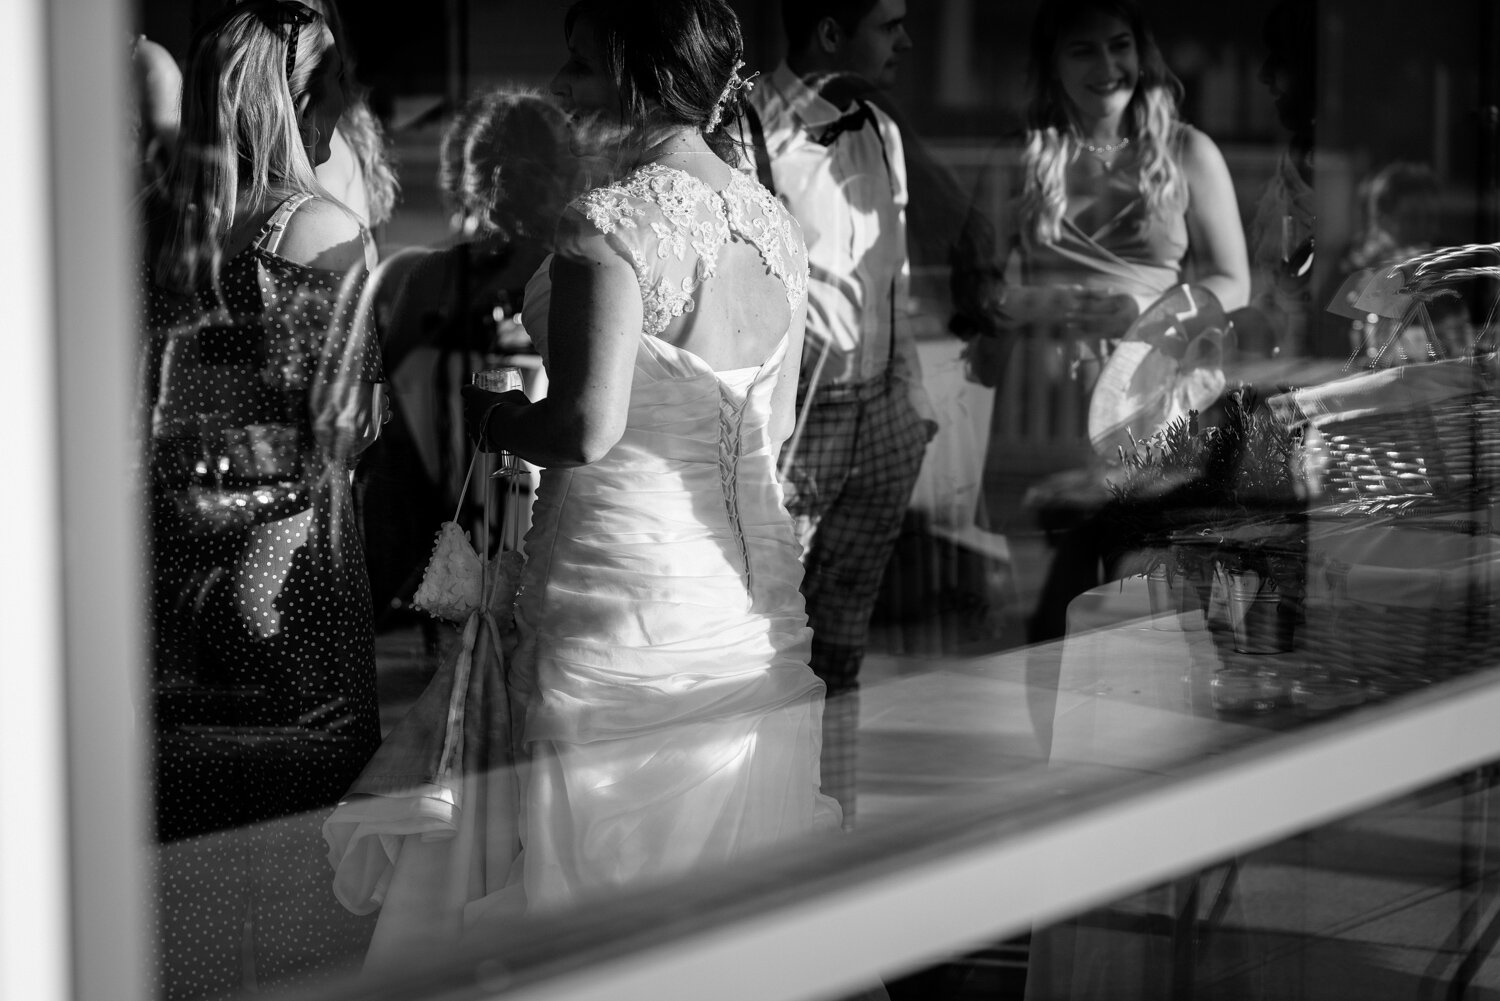 Reflection of brides dress in window